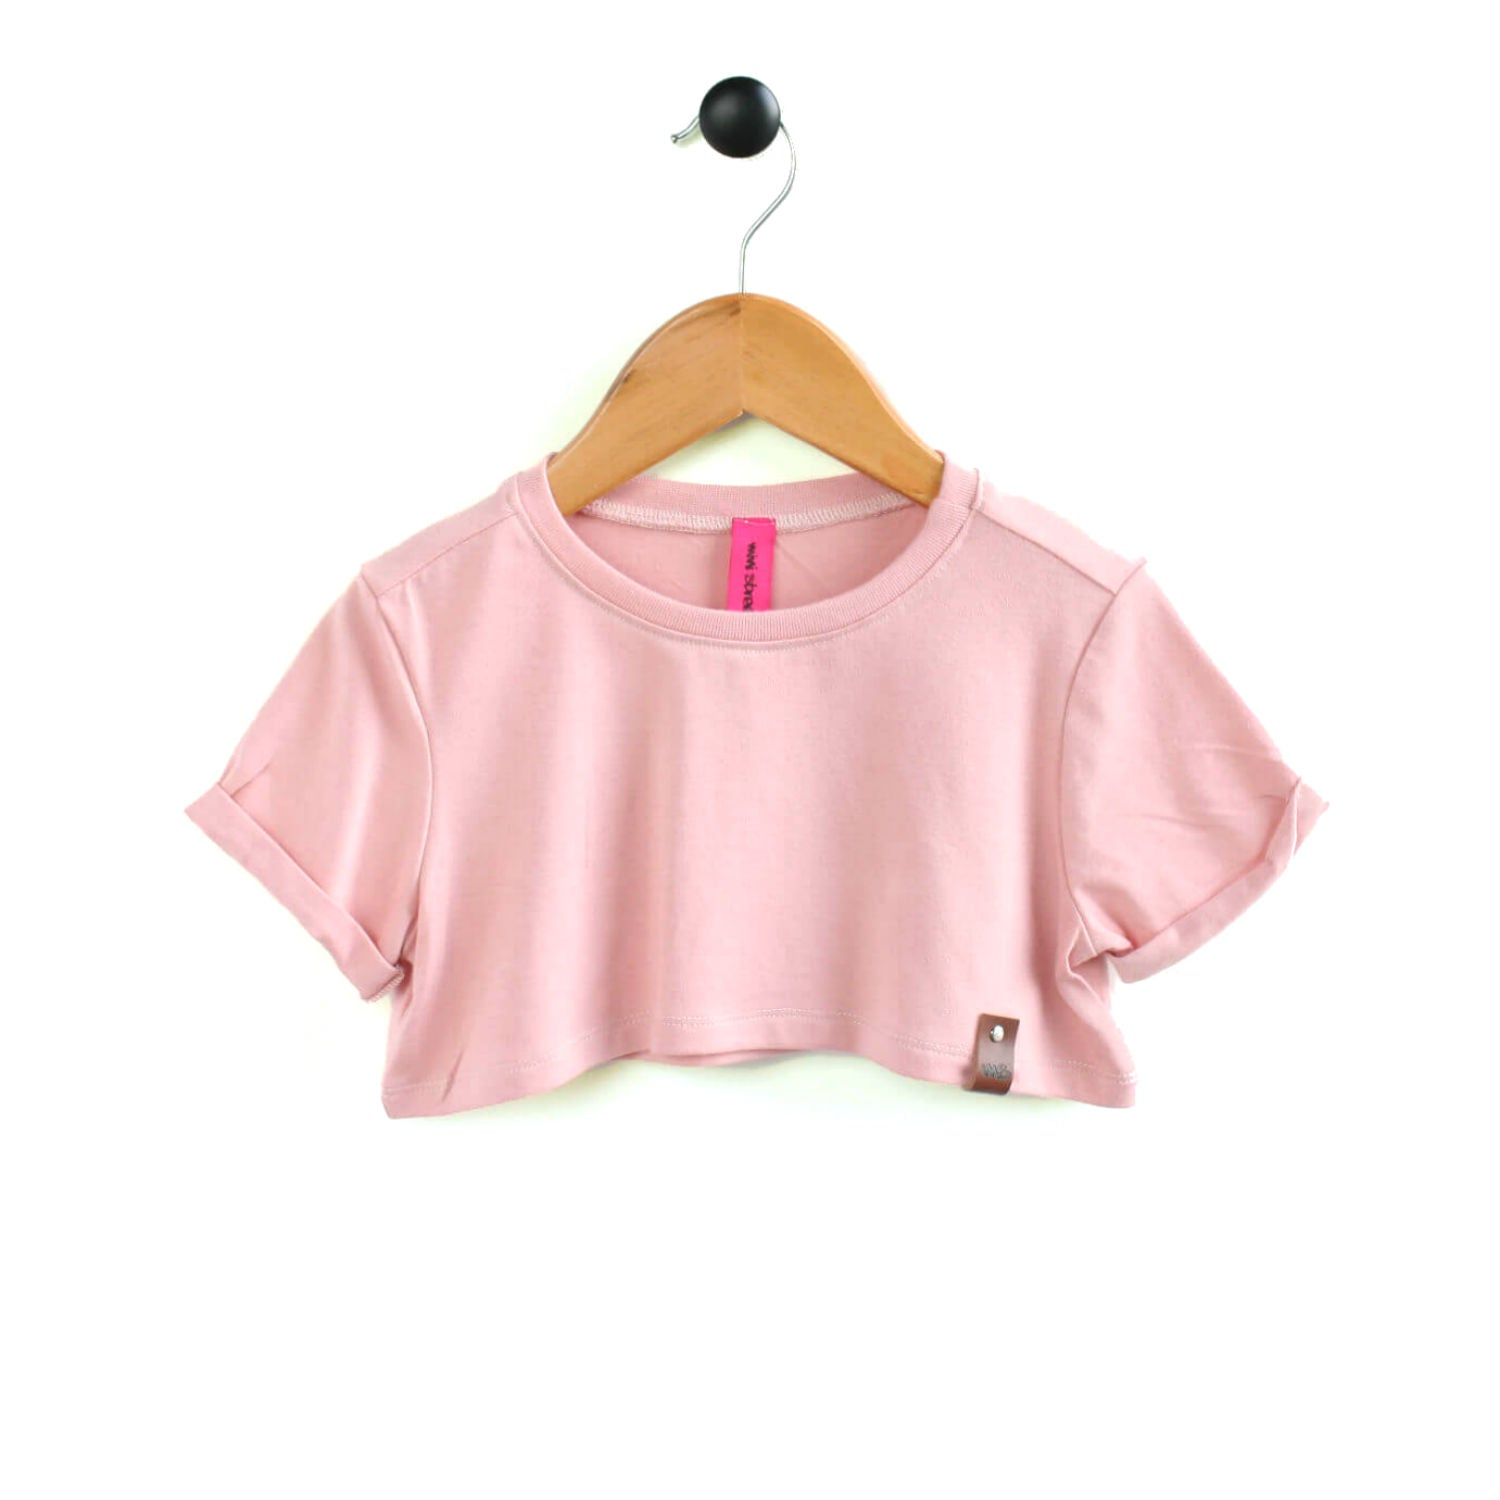 Blake Crop Top - Blush Pink